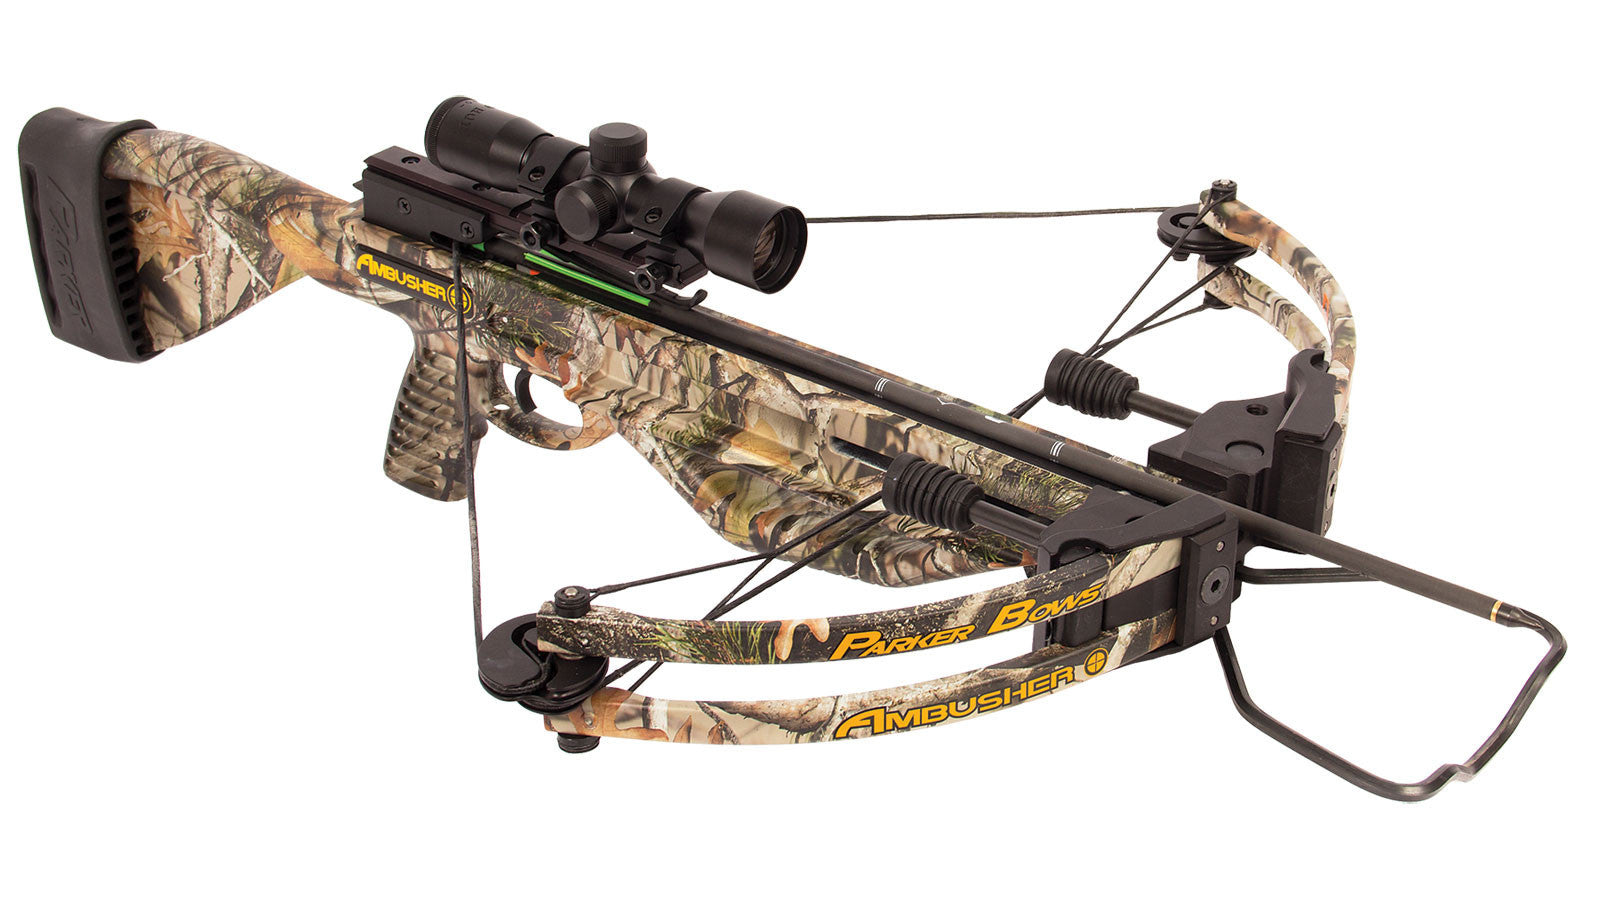 Parker Bows Ambusher Crossbow with 4x Multi Reticle Scope